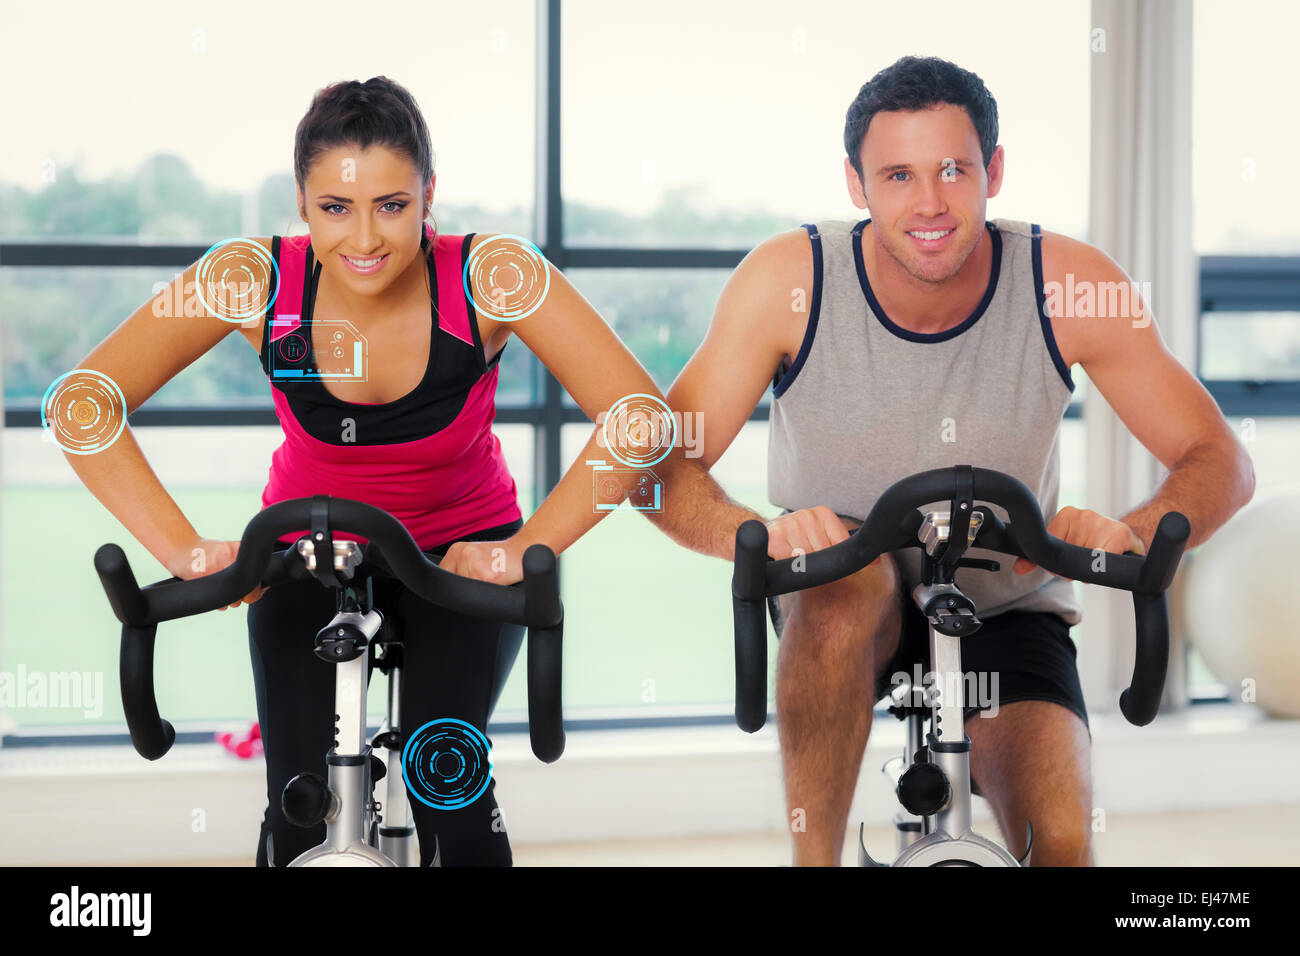 Composite image of young man and woman working out at spinning class - Stock Image